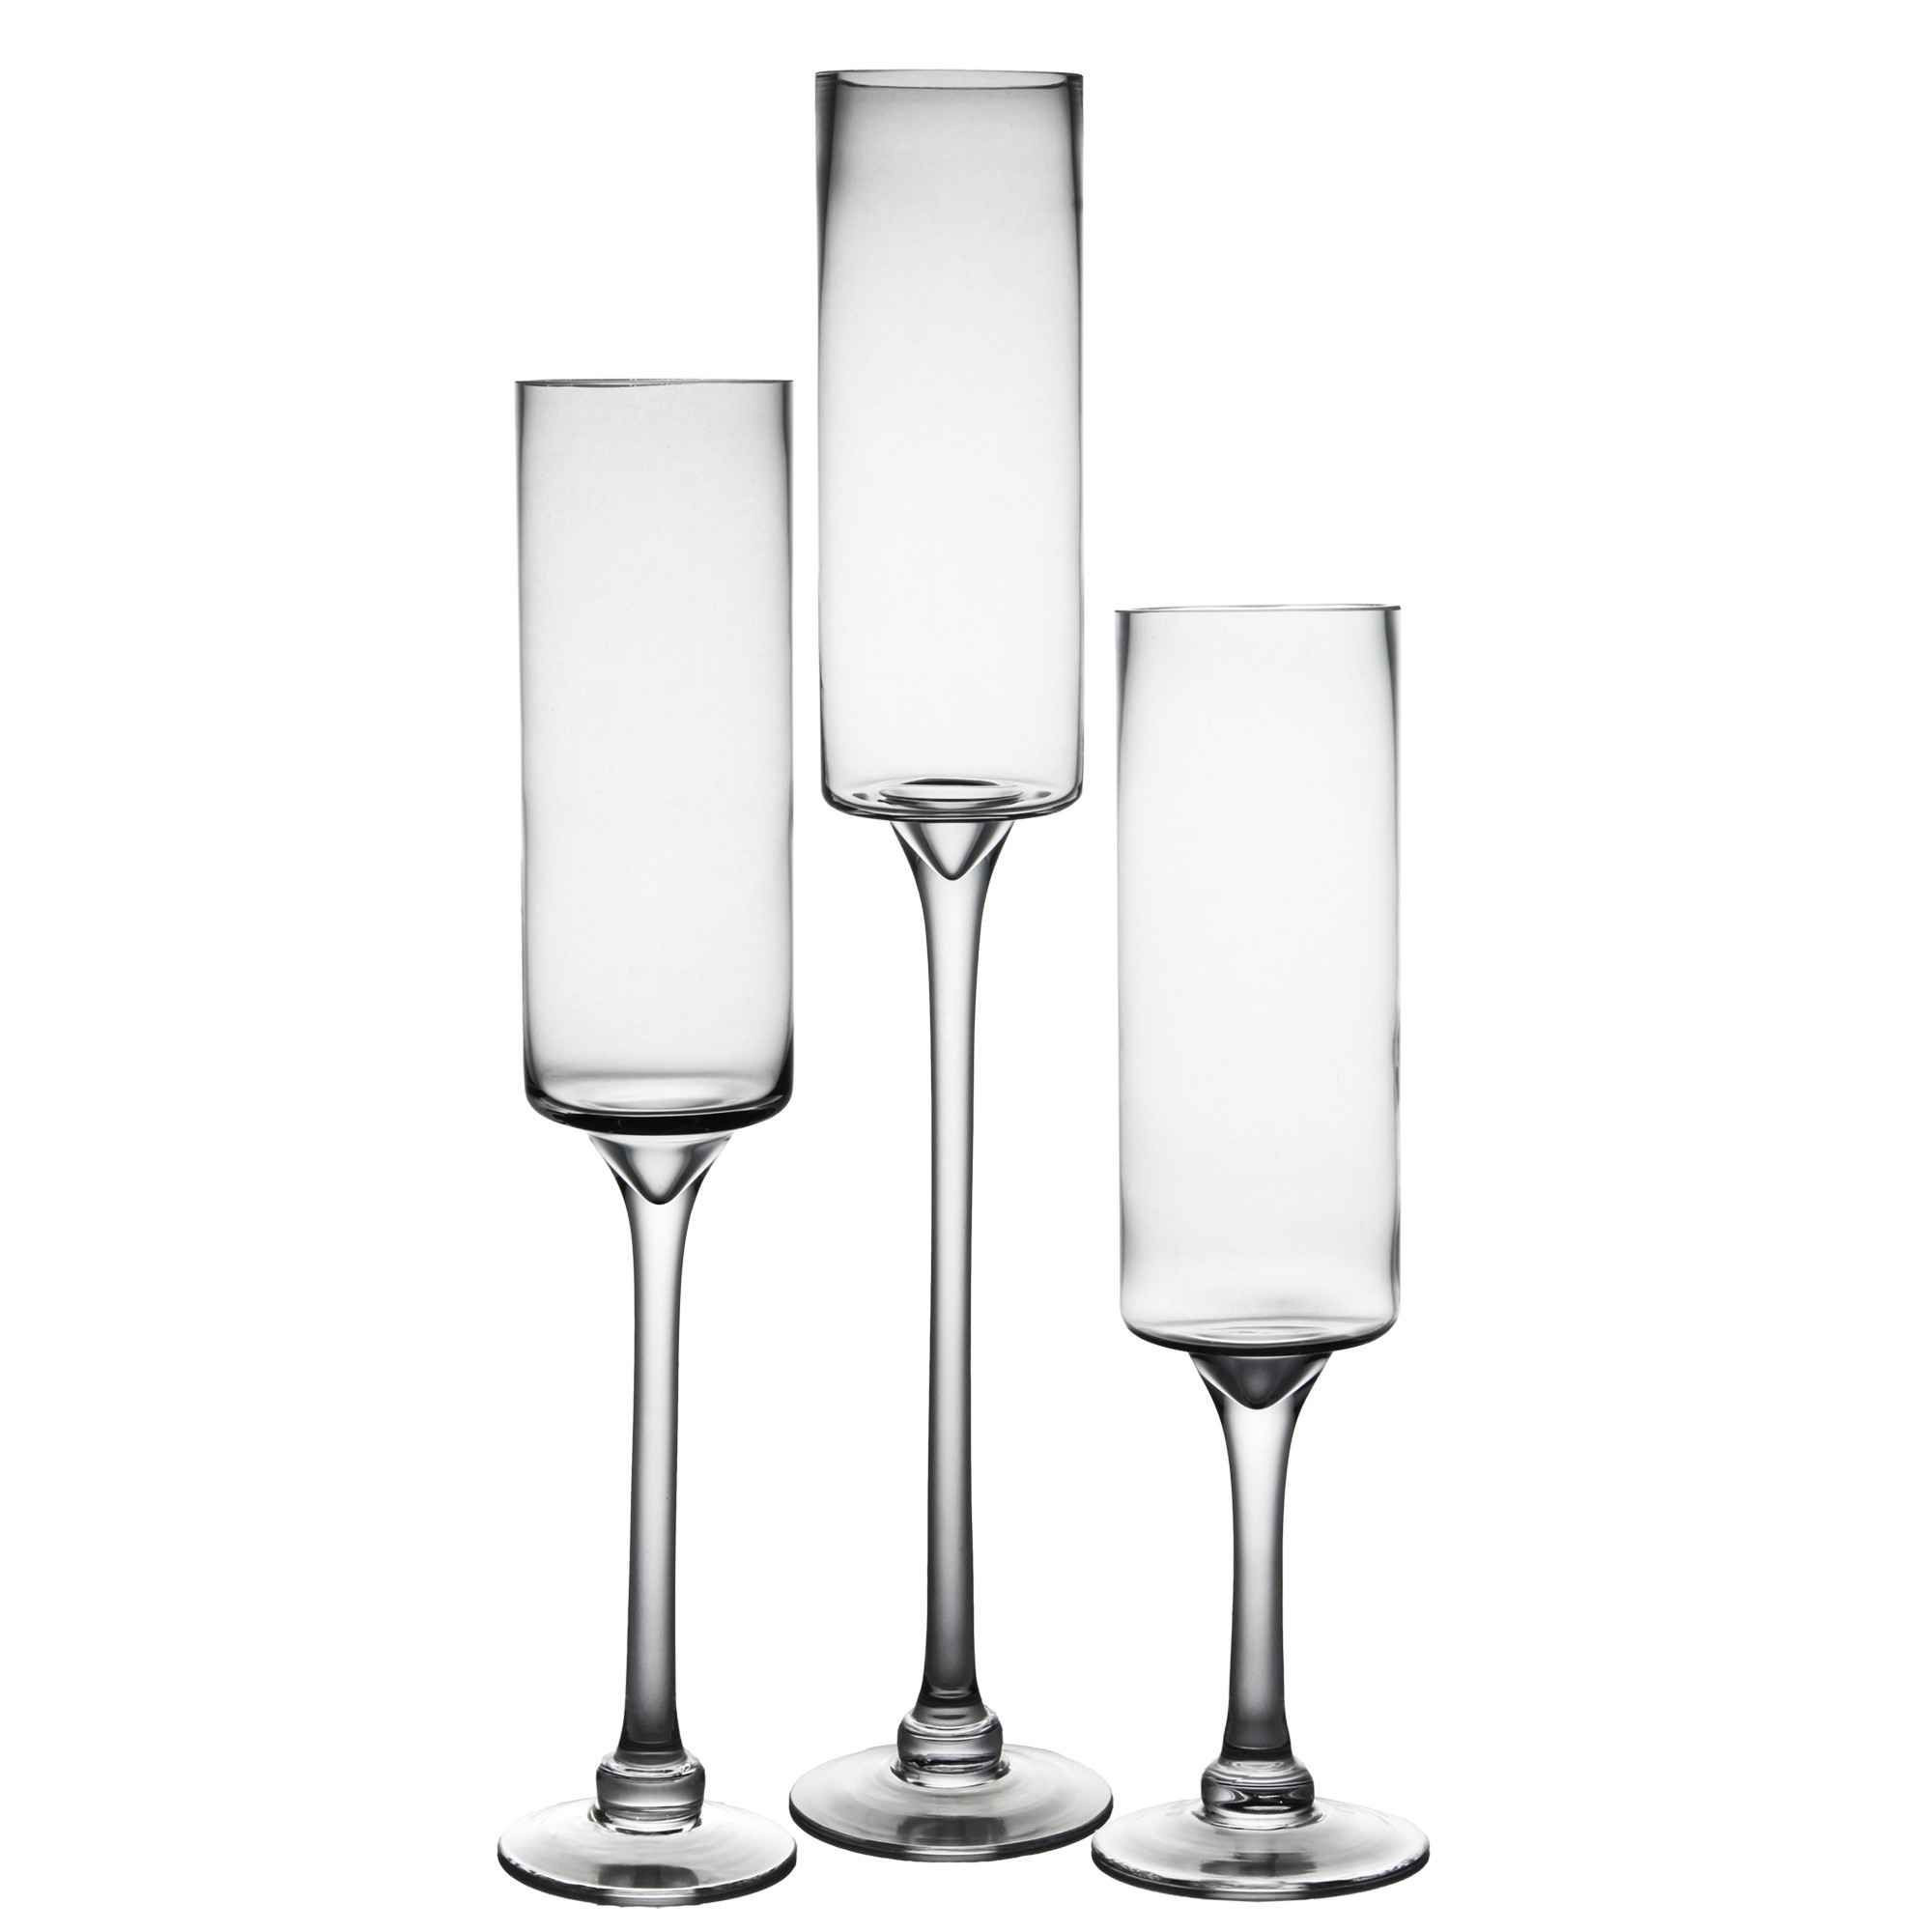 clear vases for weddings of big glass vase beautiful l h vases 12 inch hurricane clear glass with regard to big glass vase beautiful l h vases 12 inch hurricane clear glass vase i 0d cheap in